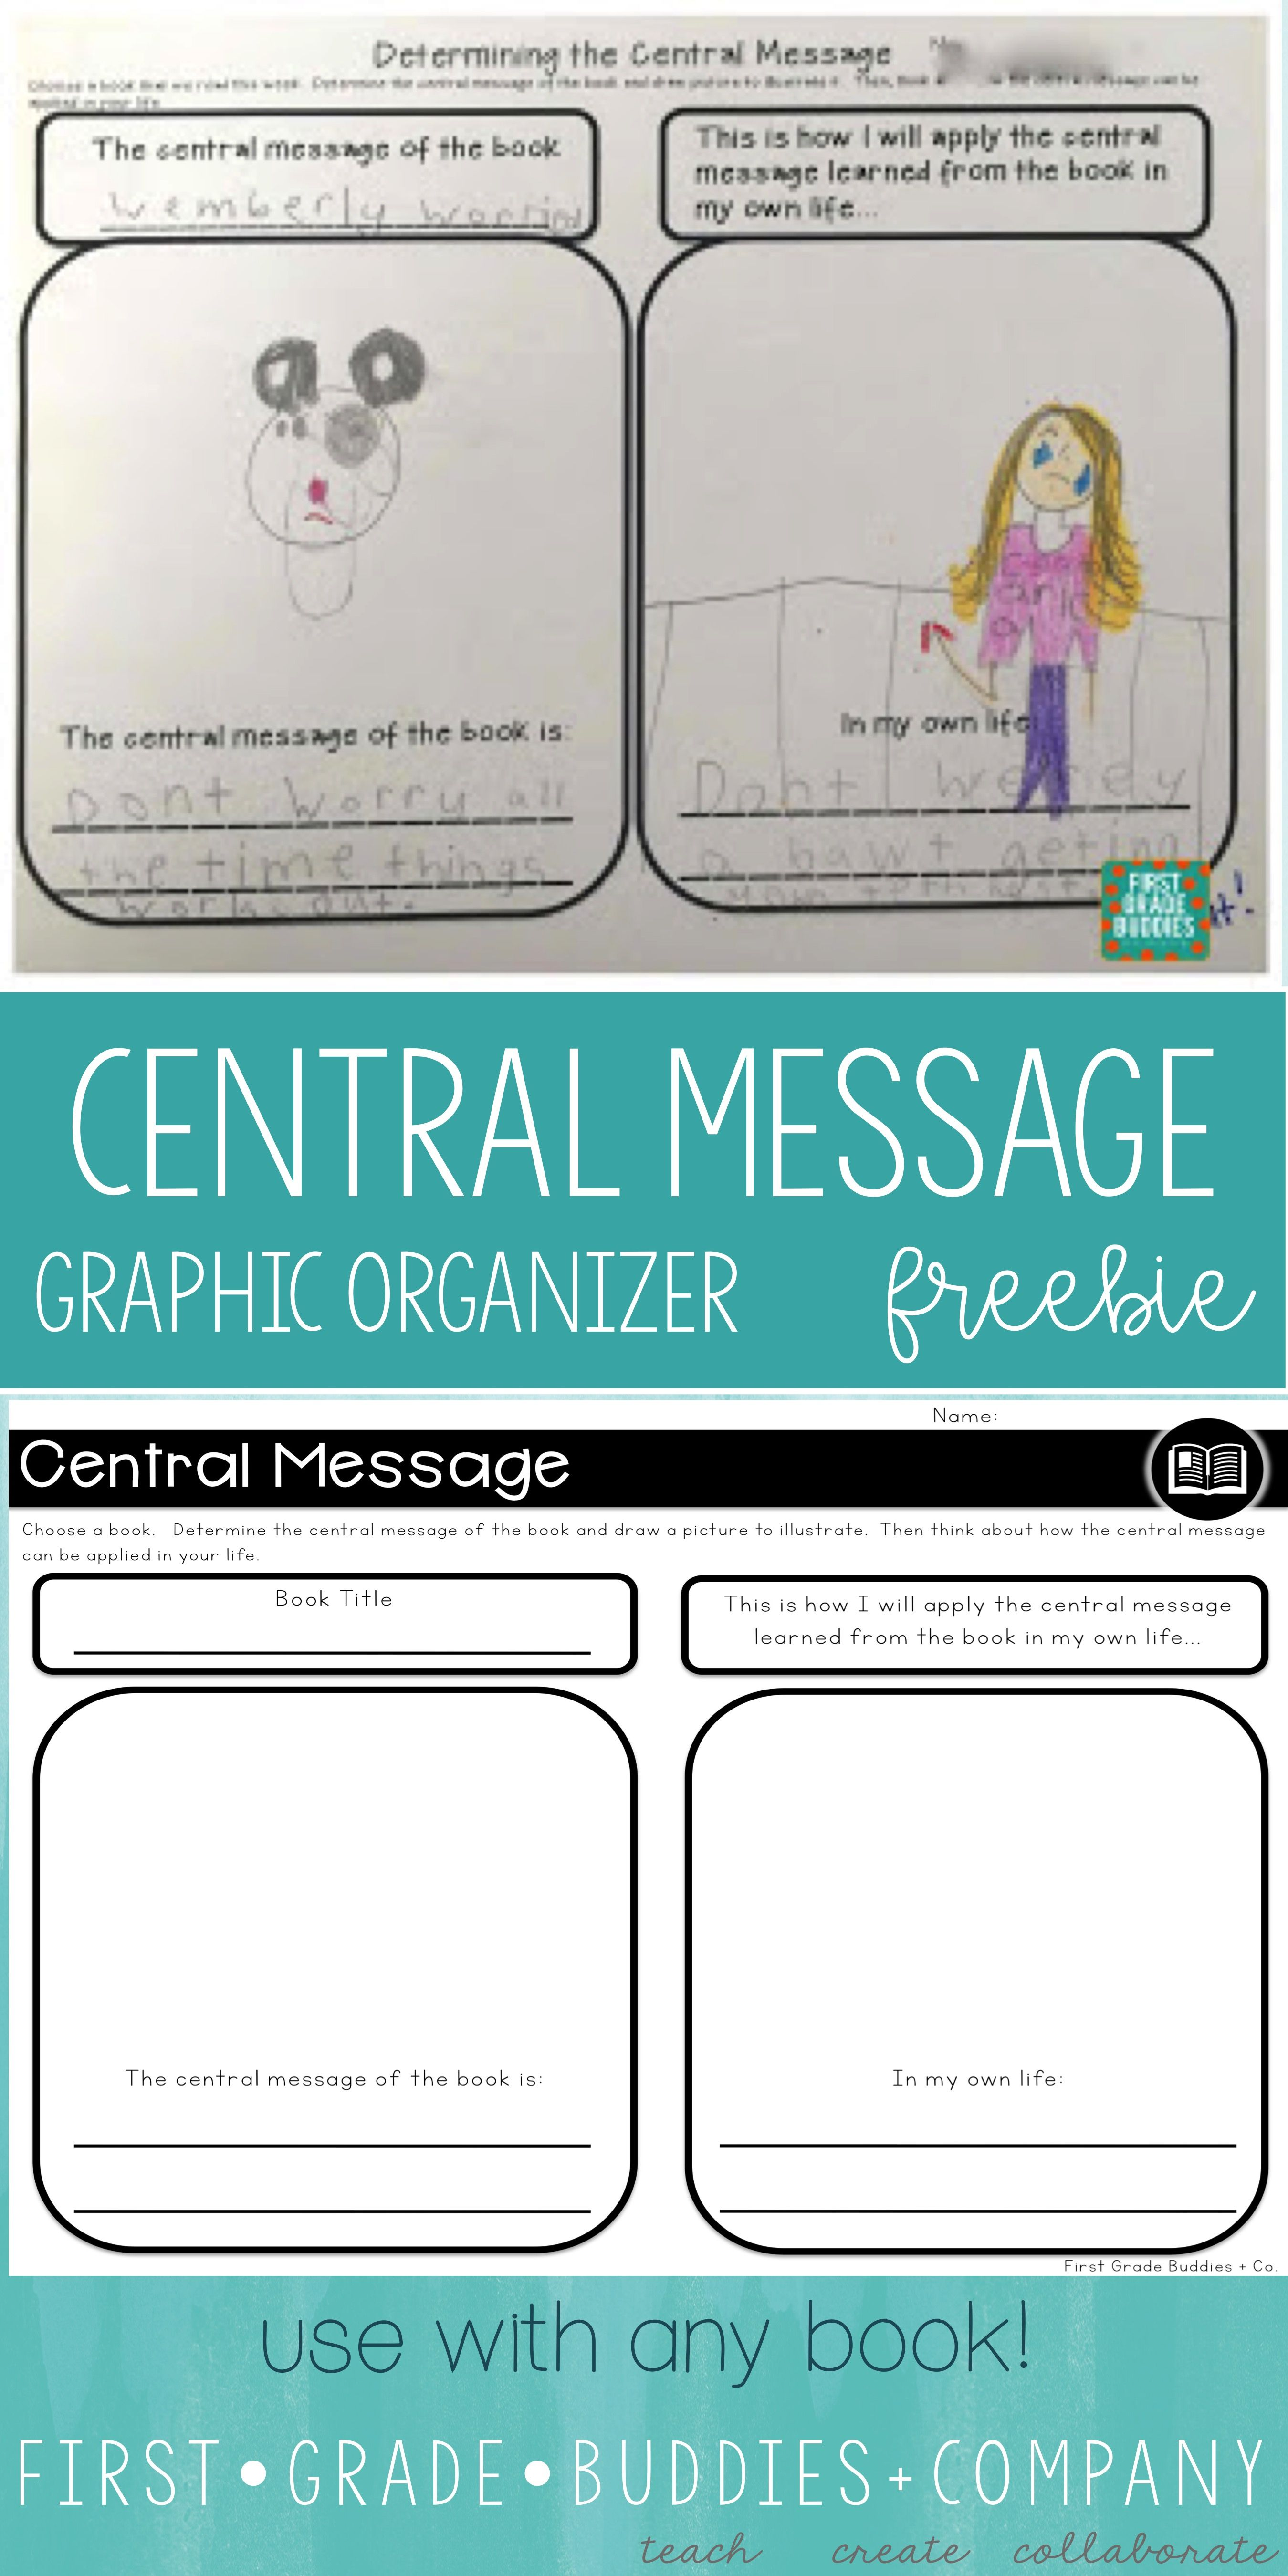 First Grade Buddies: Graphic Organizers for ANY Book! We created one great  big FREE reso…   Reading graphic organizers [ 5399 x 2699 Pixel ]